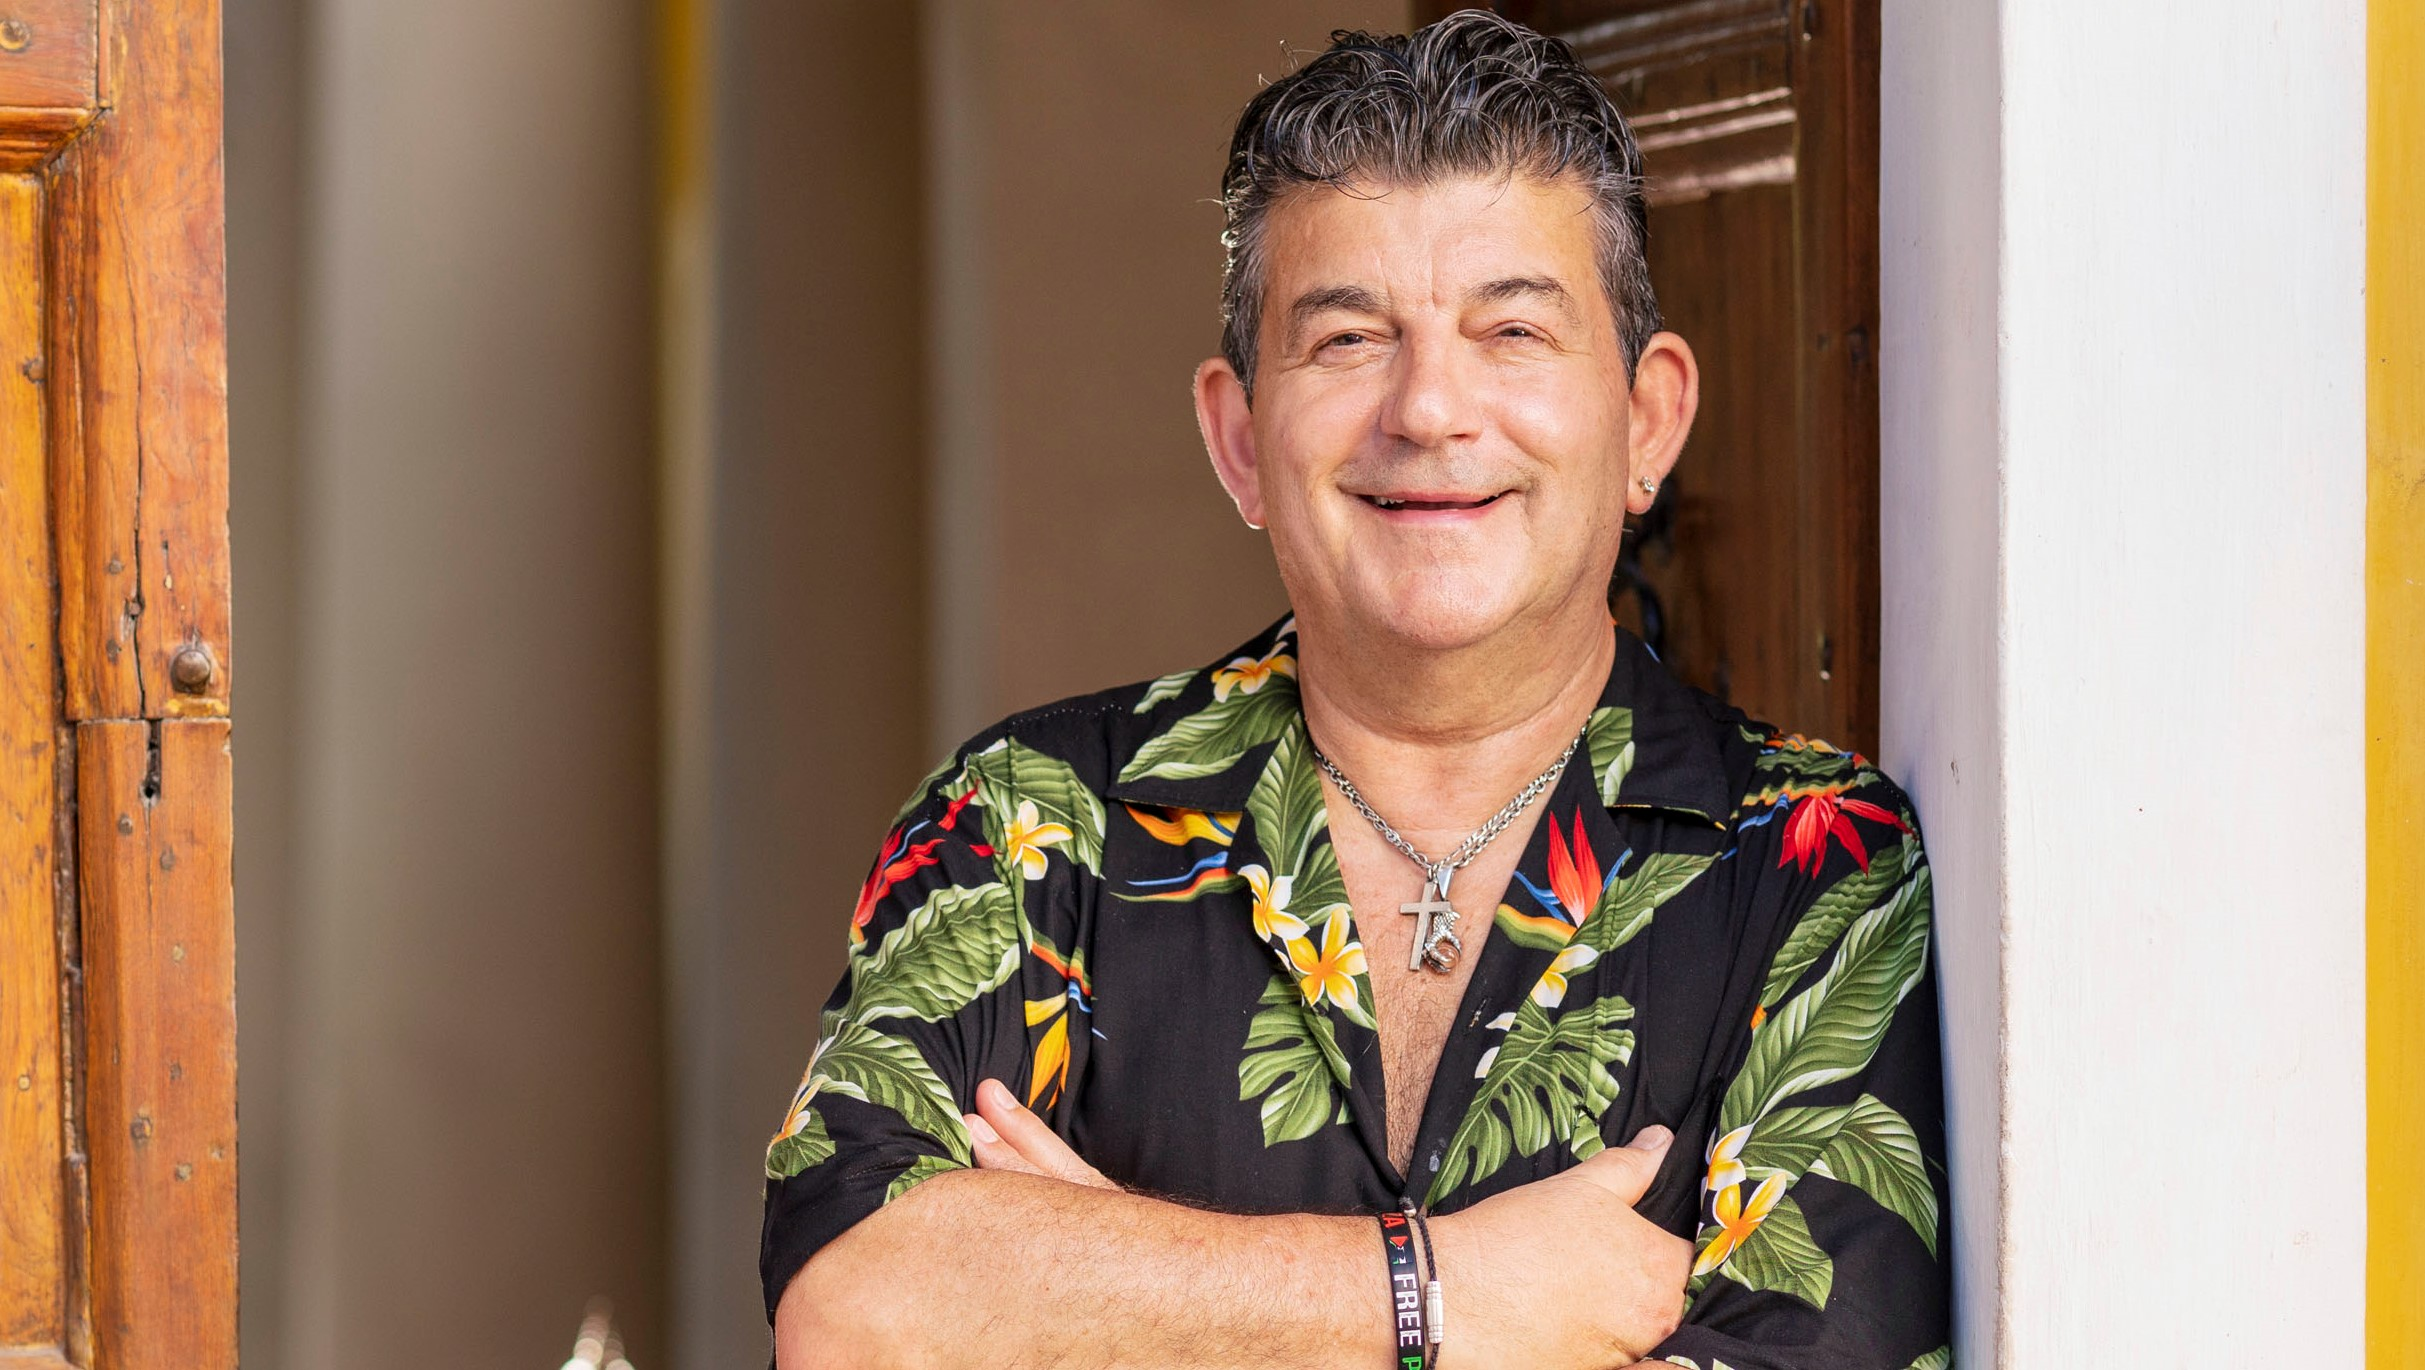 The Real Marigold Hotel fans shocked that EastEnders actor John Altman is 68